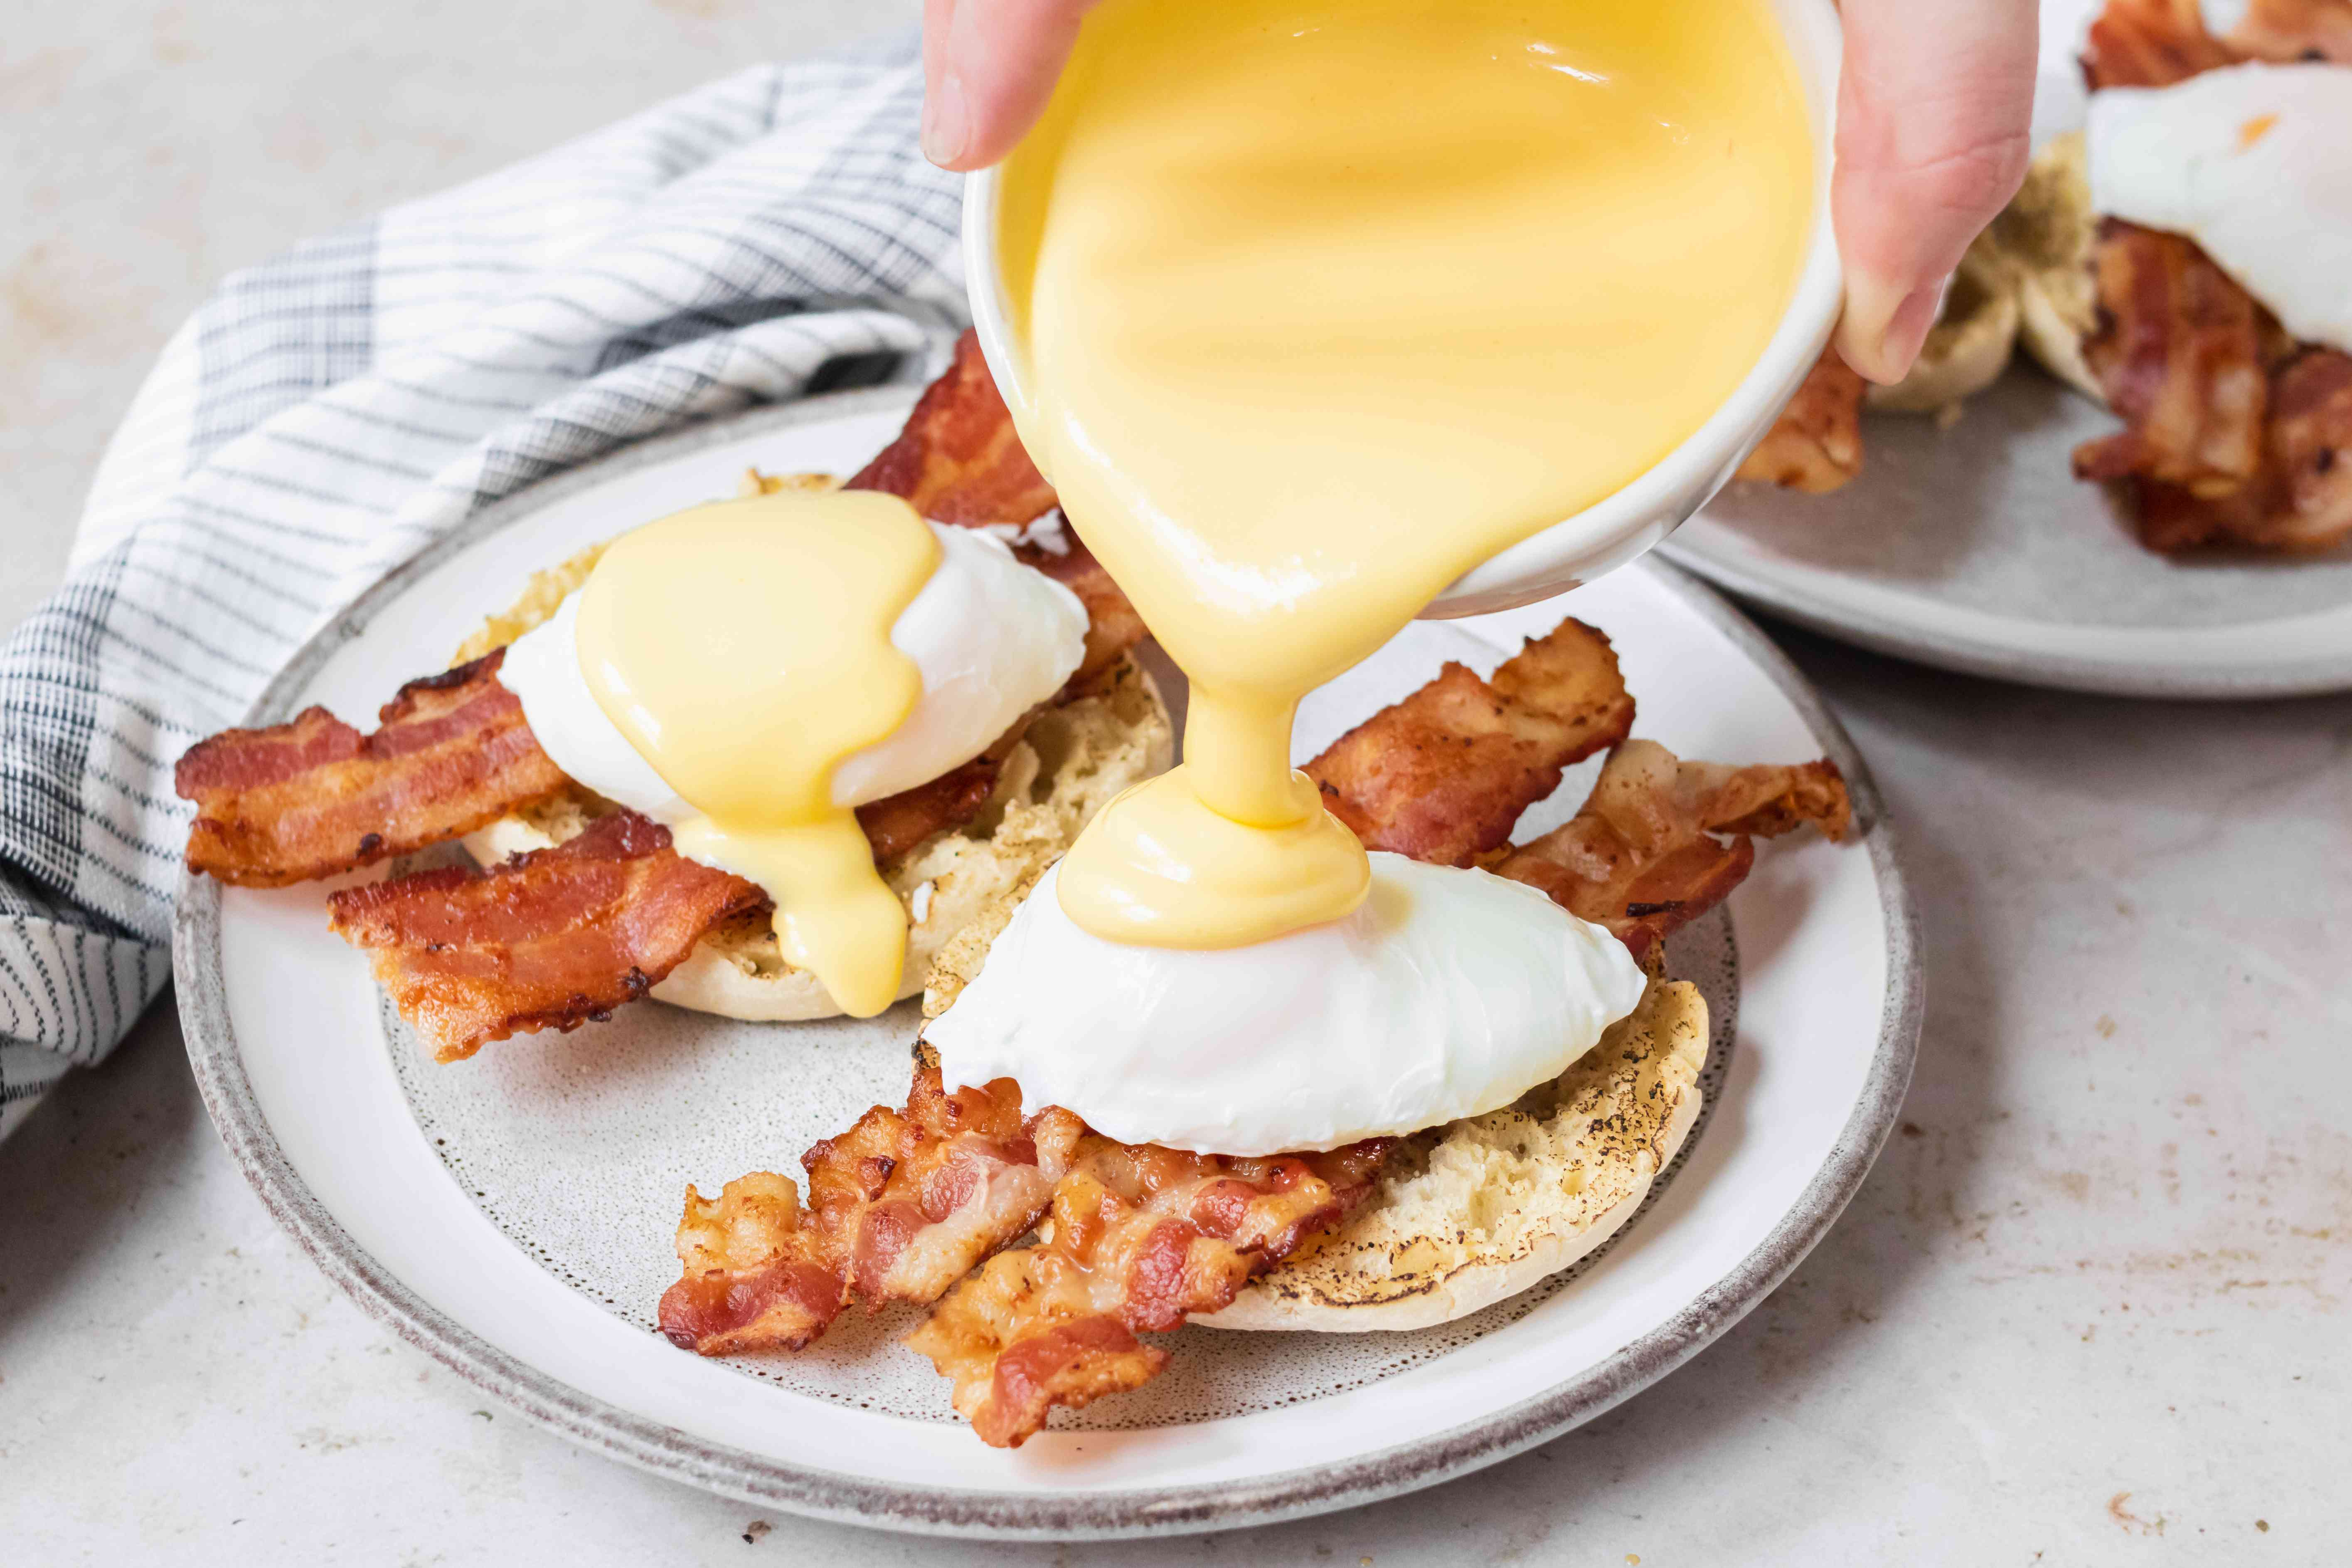 English muffins with bacon, poached egg, and being topped with hollandaise to show how to make eggs benedict.